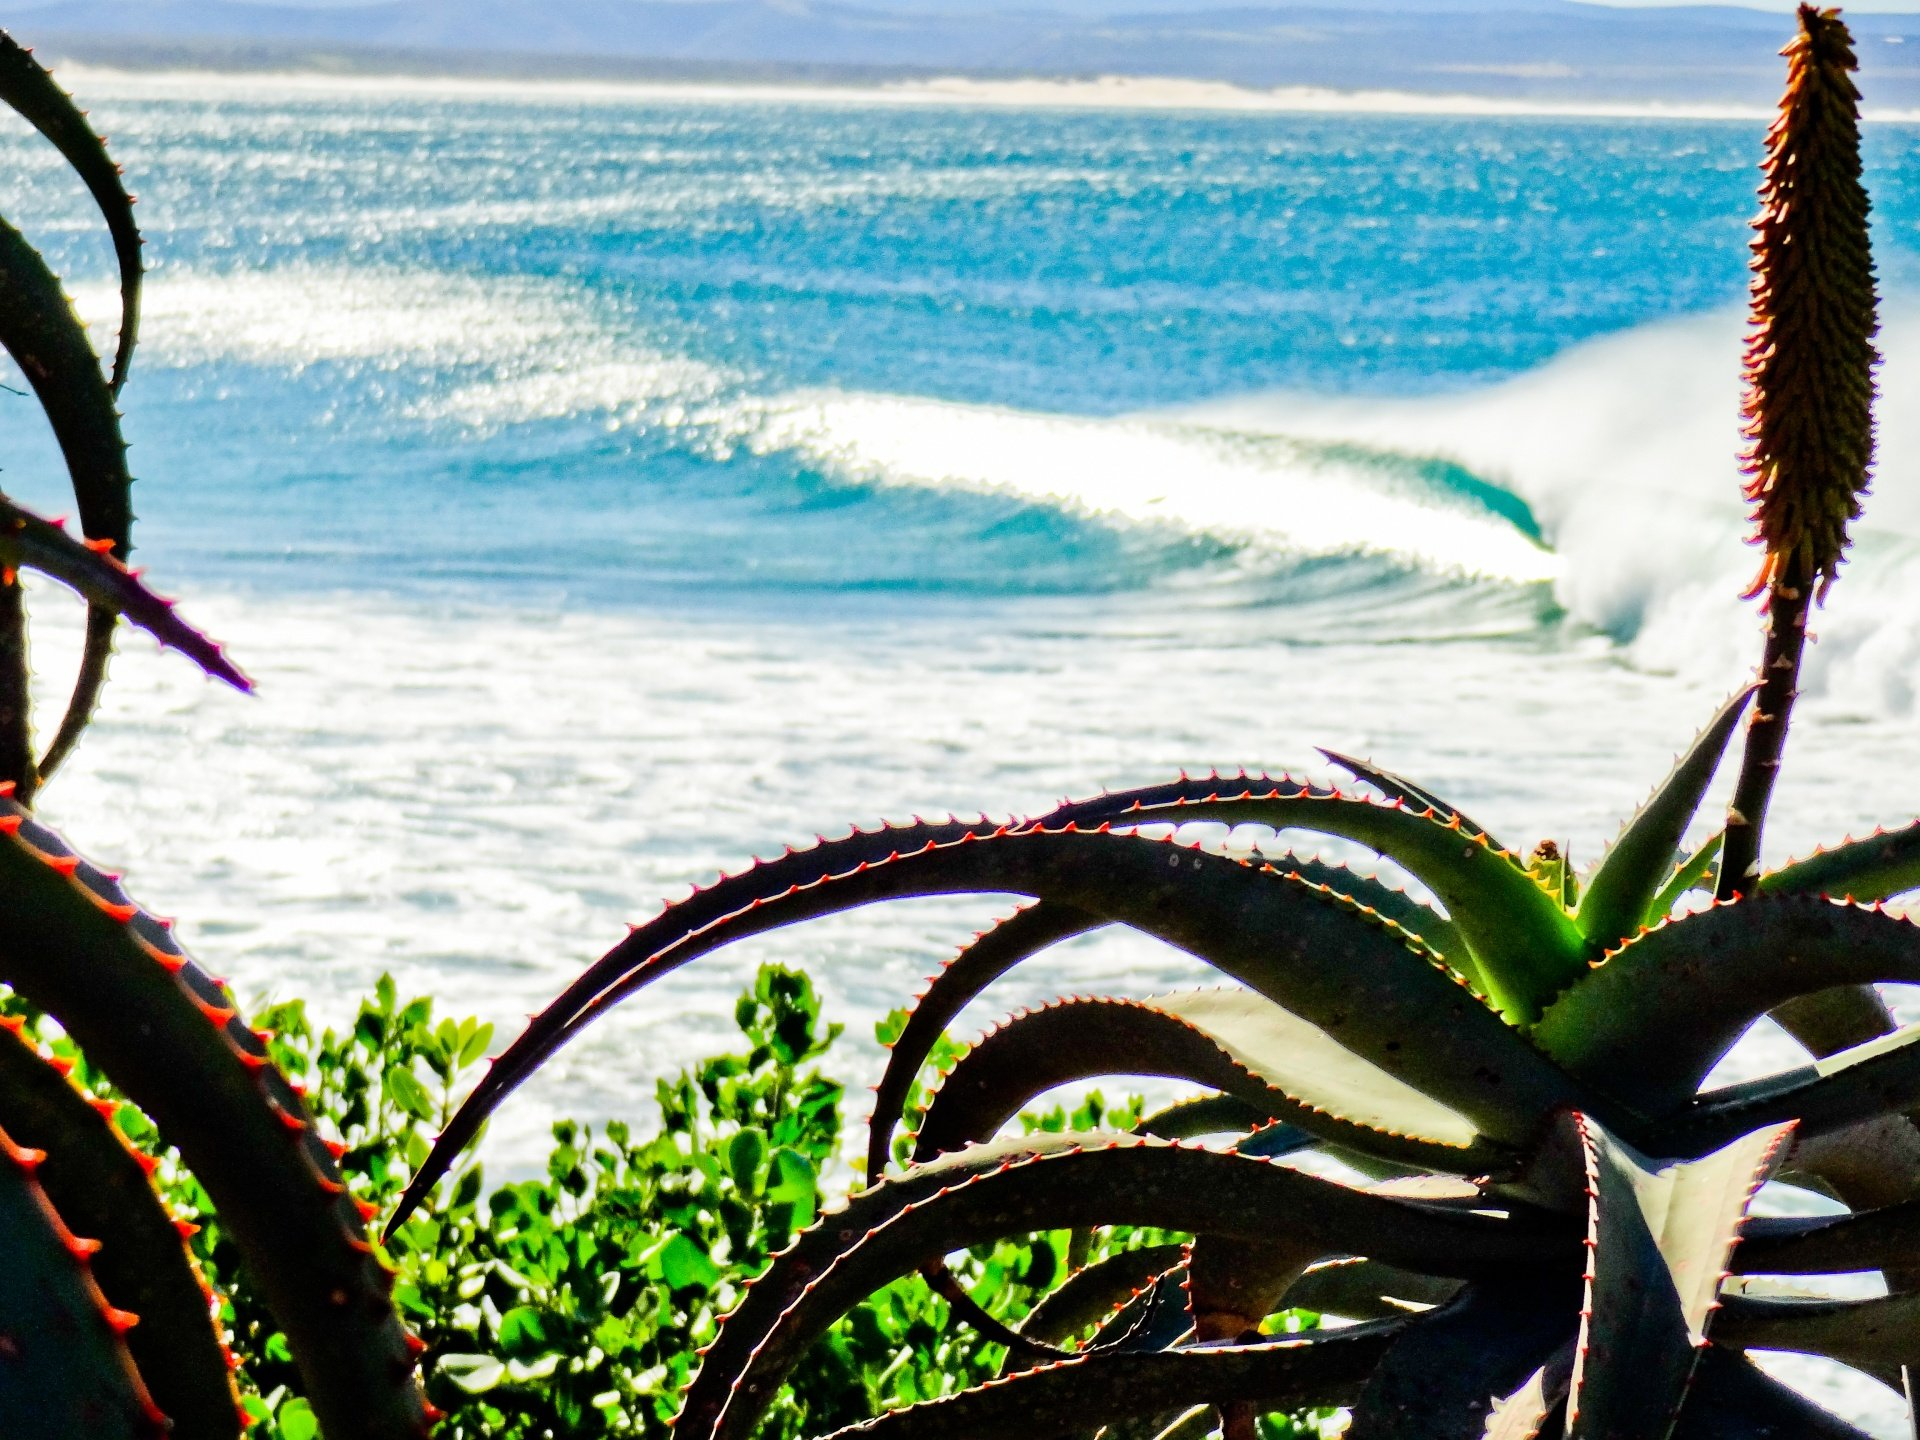 mike_ruissen's photo of Jeffreys Bay (J-Bay)